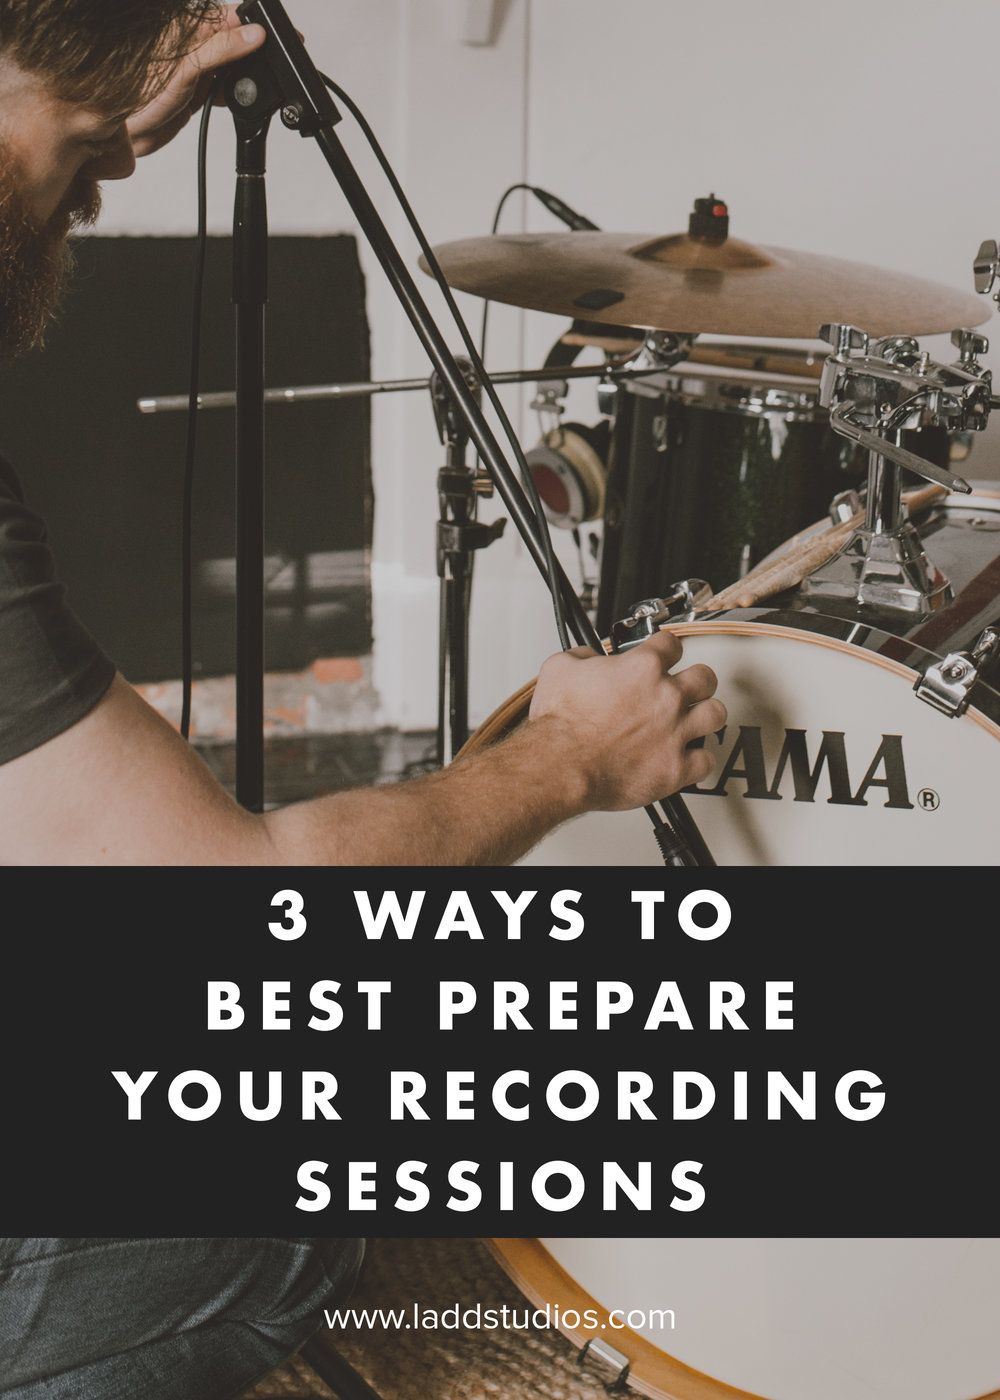 3-ways-to-best-prepare-your-recording-sessions.jpg